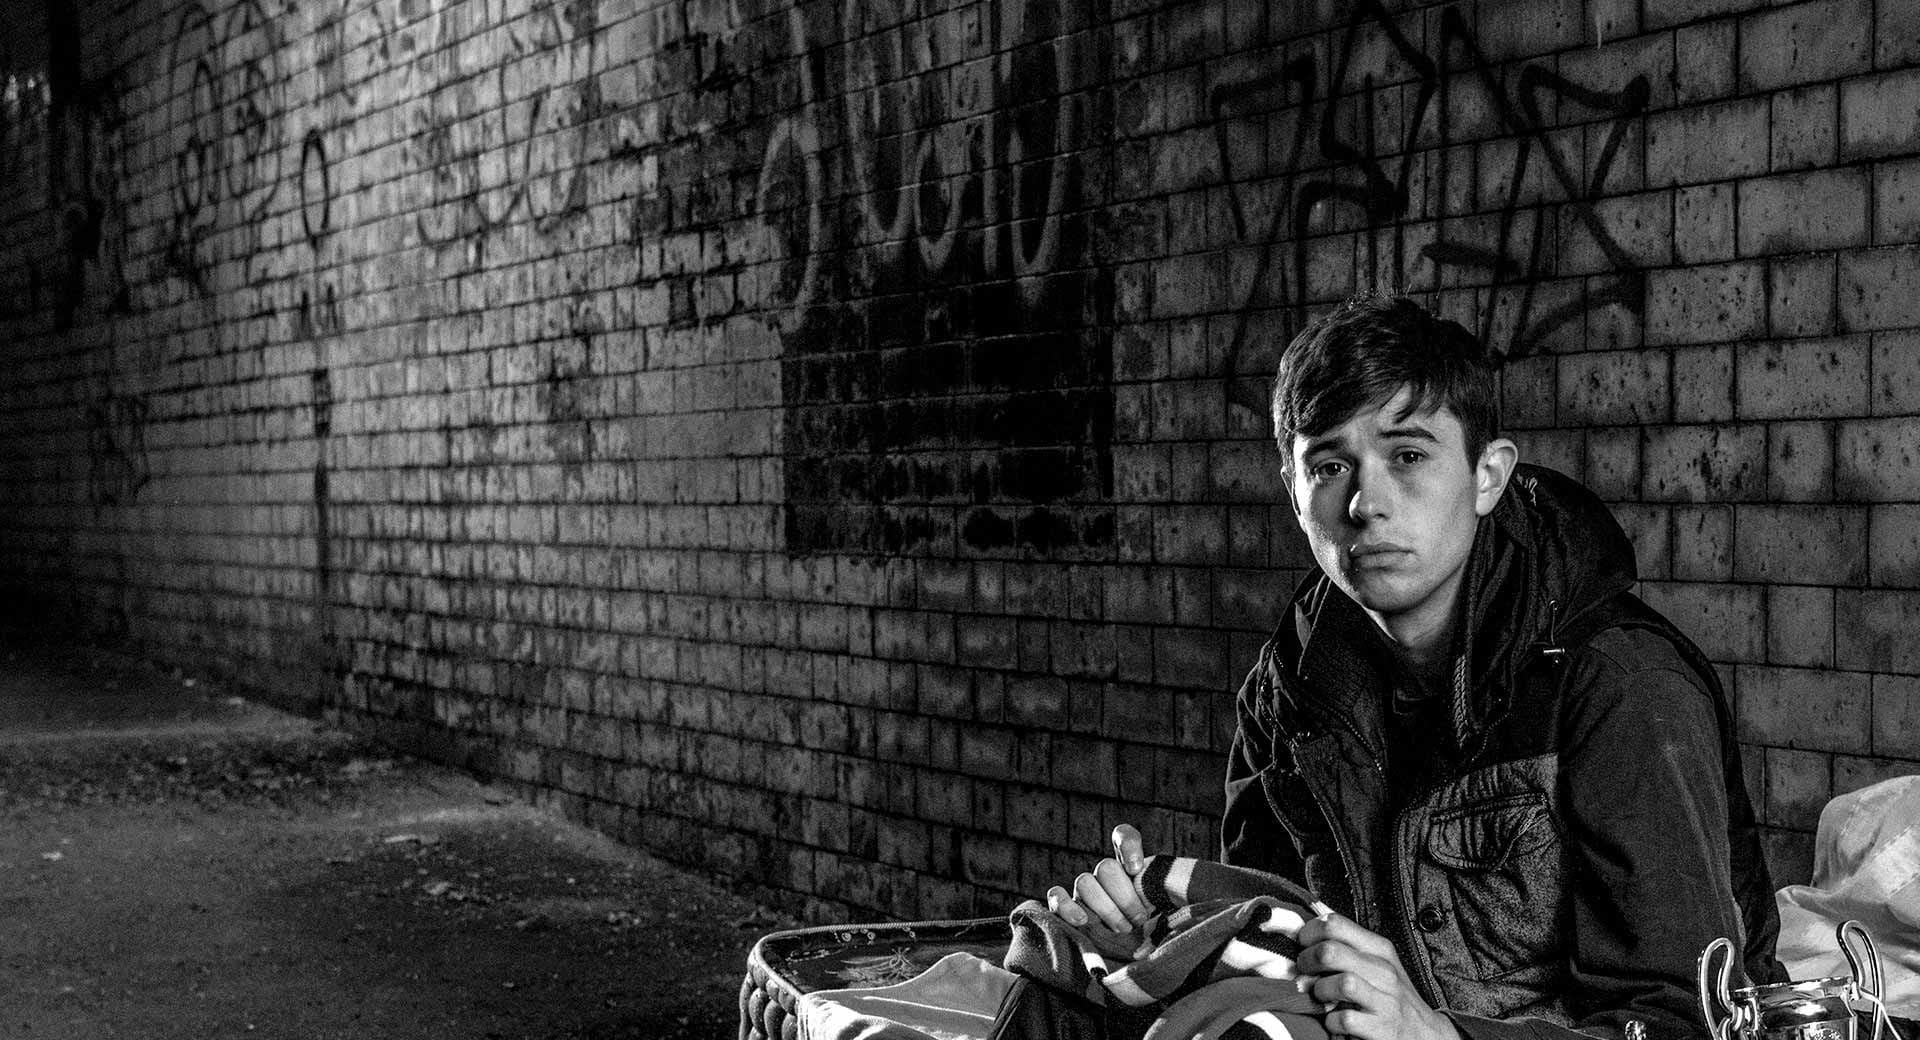 Young man sitting alone on a mattress on a dimly lit street